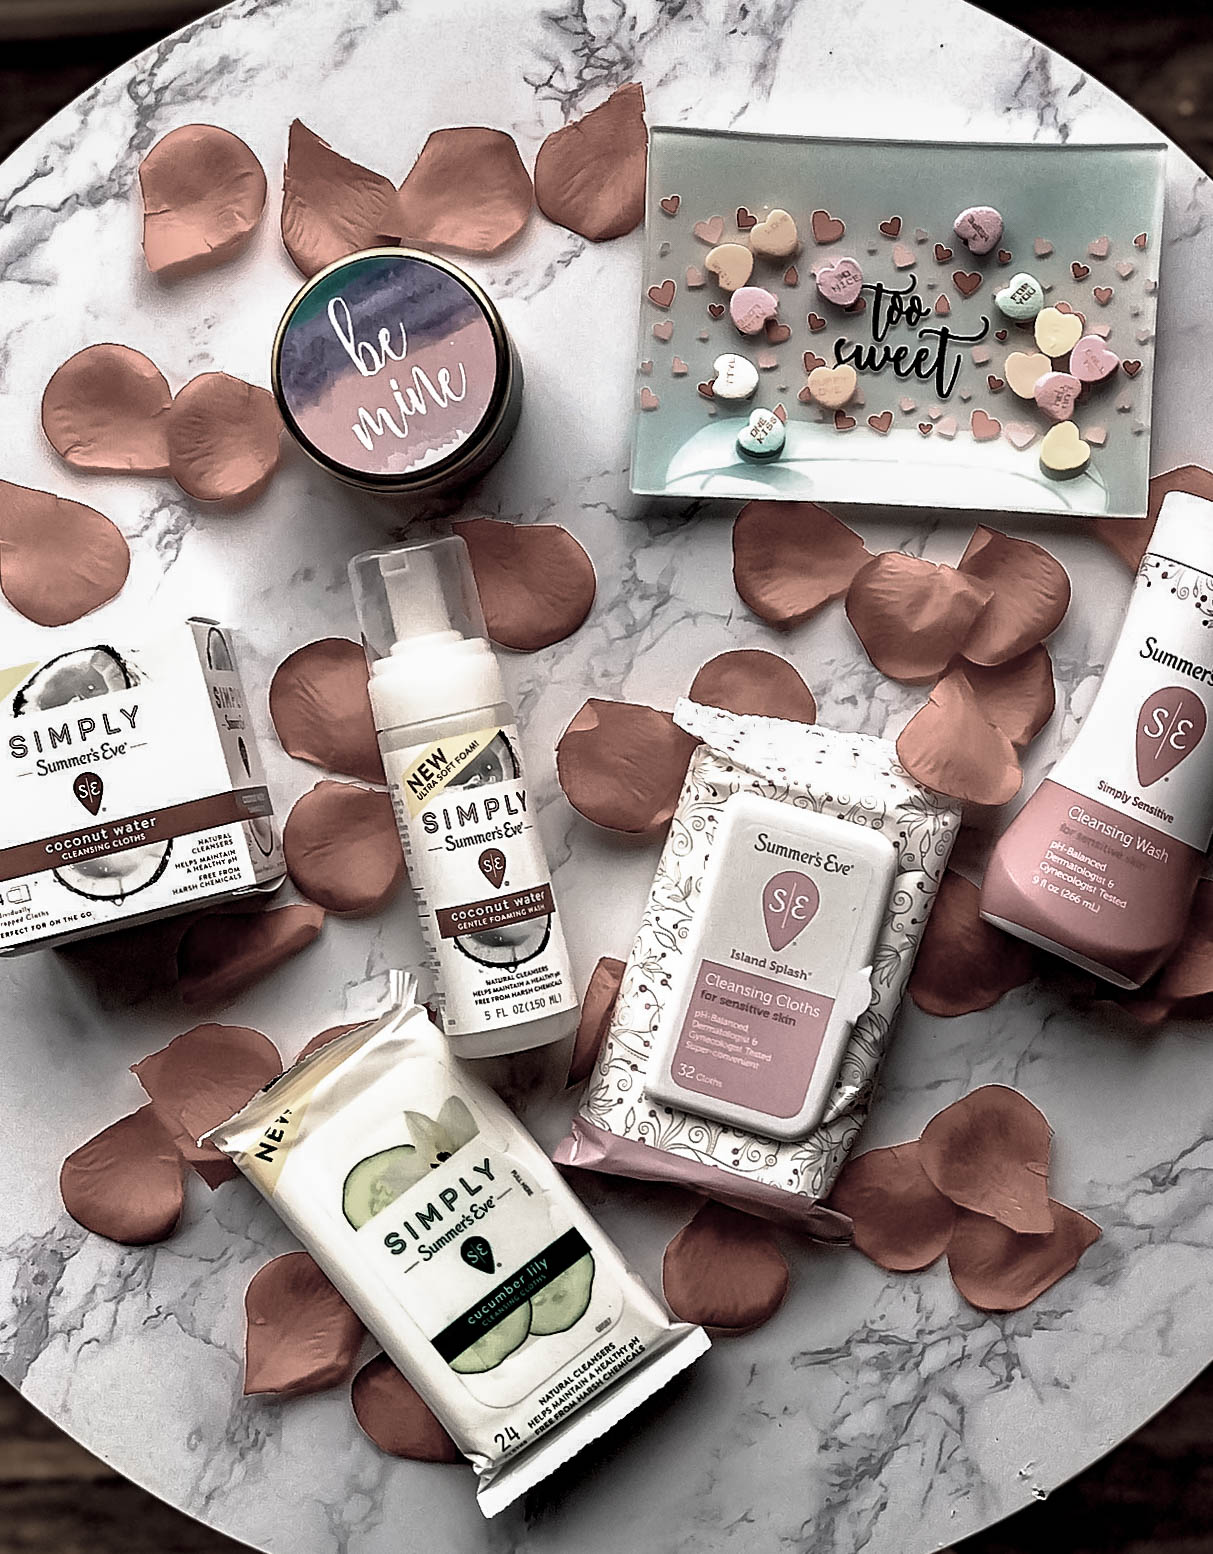 Stay Fresh For Valentine's Day With Summer's Eve